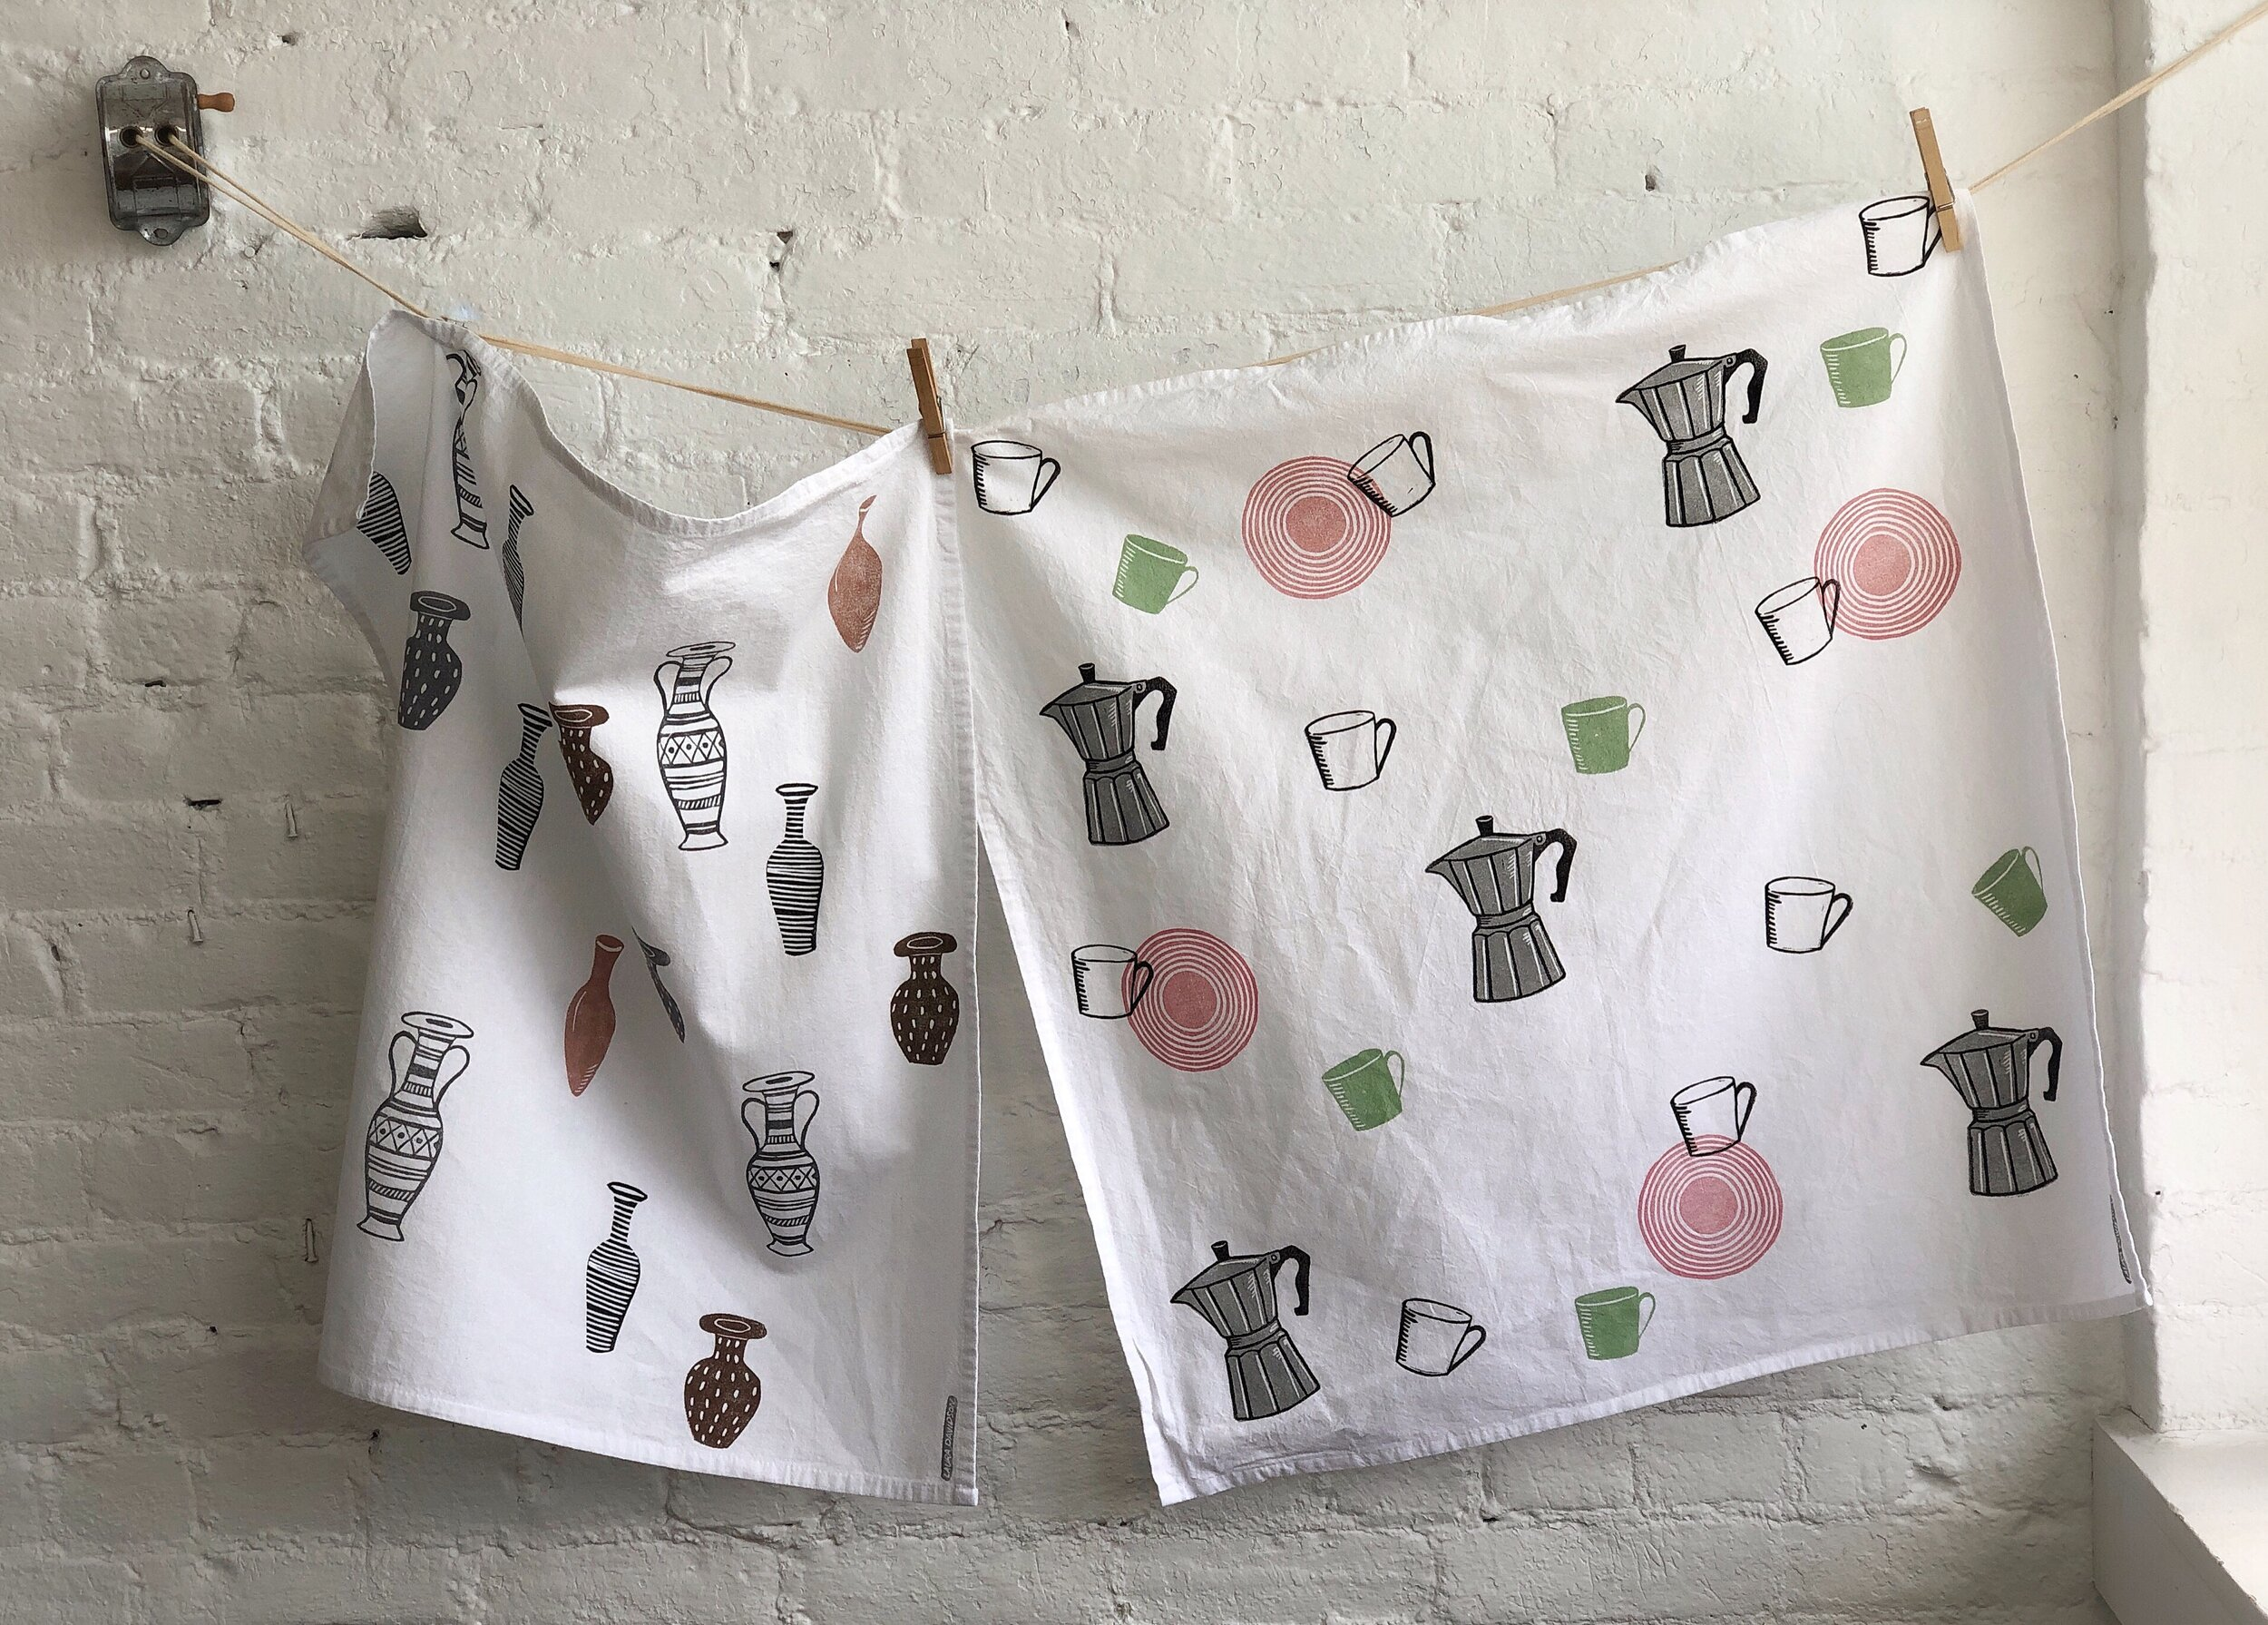 Hand printed Tea Towels , 2019 Washable fabric ink on soft cotton flour sack towels